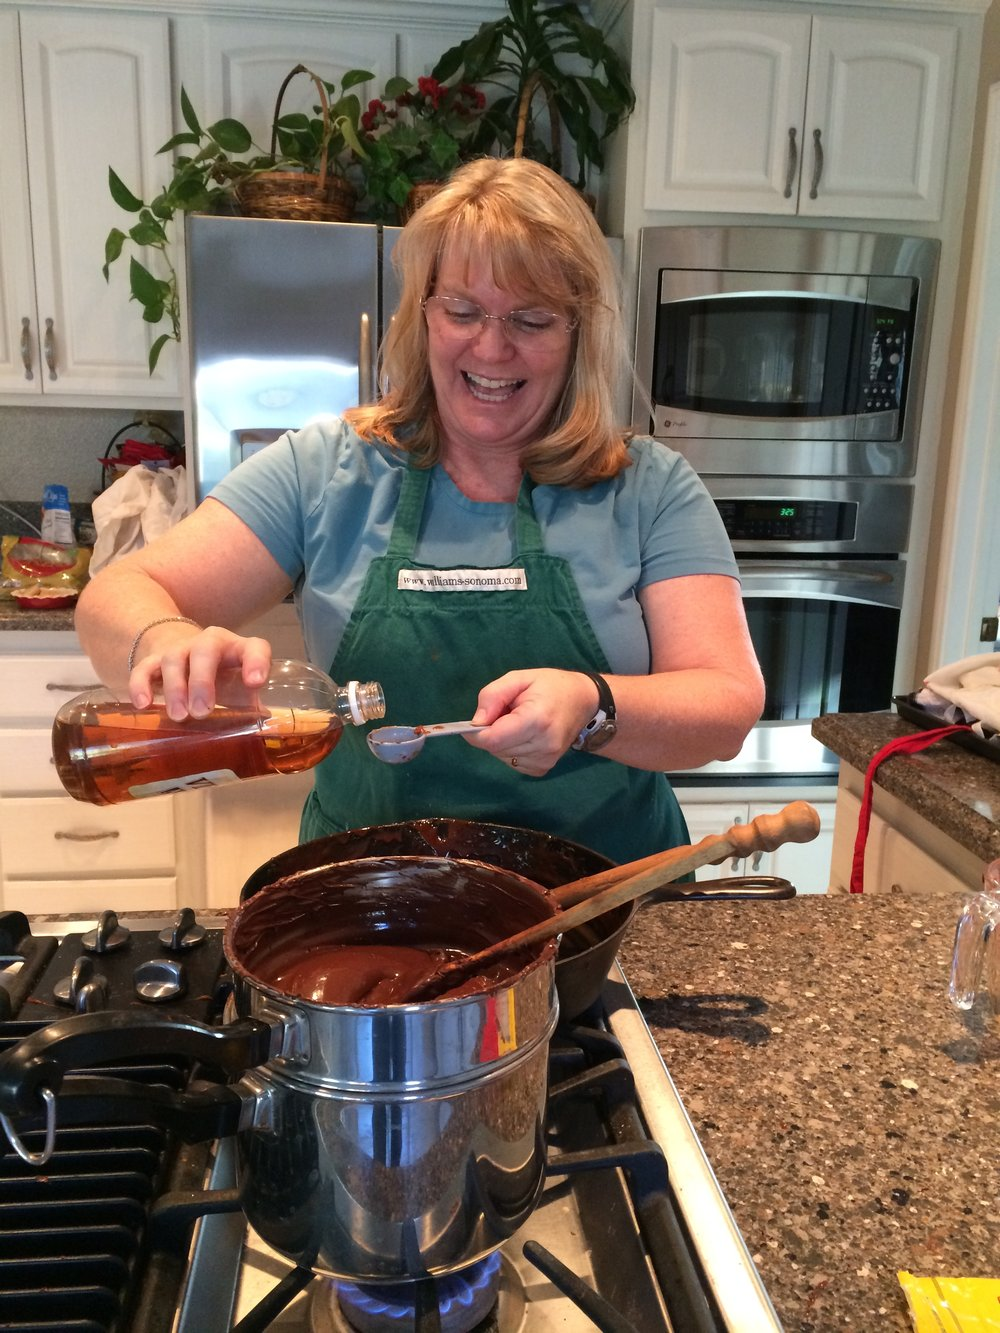 Annual EnglishToffee Making for our Year End Gift to Donors - 2016